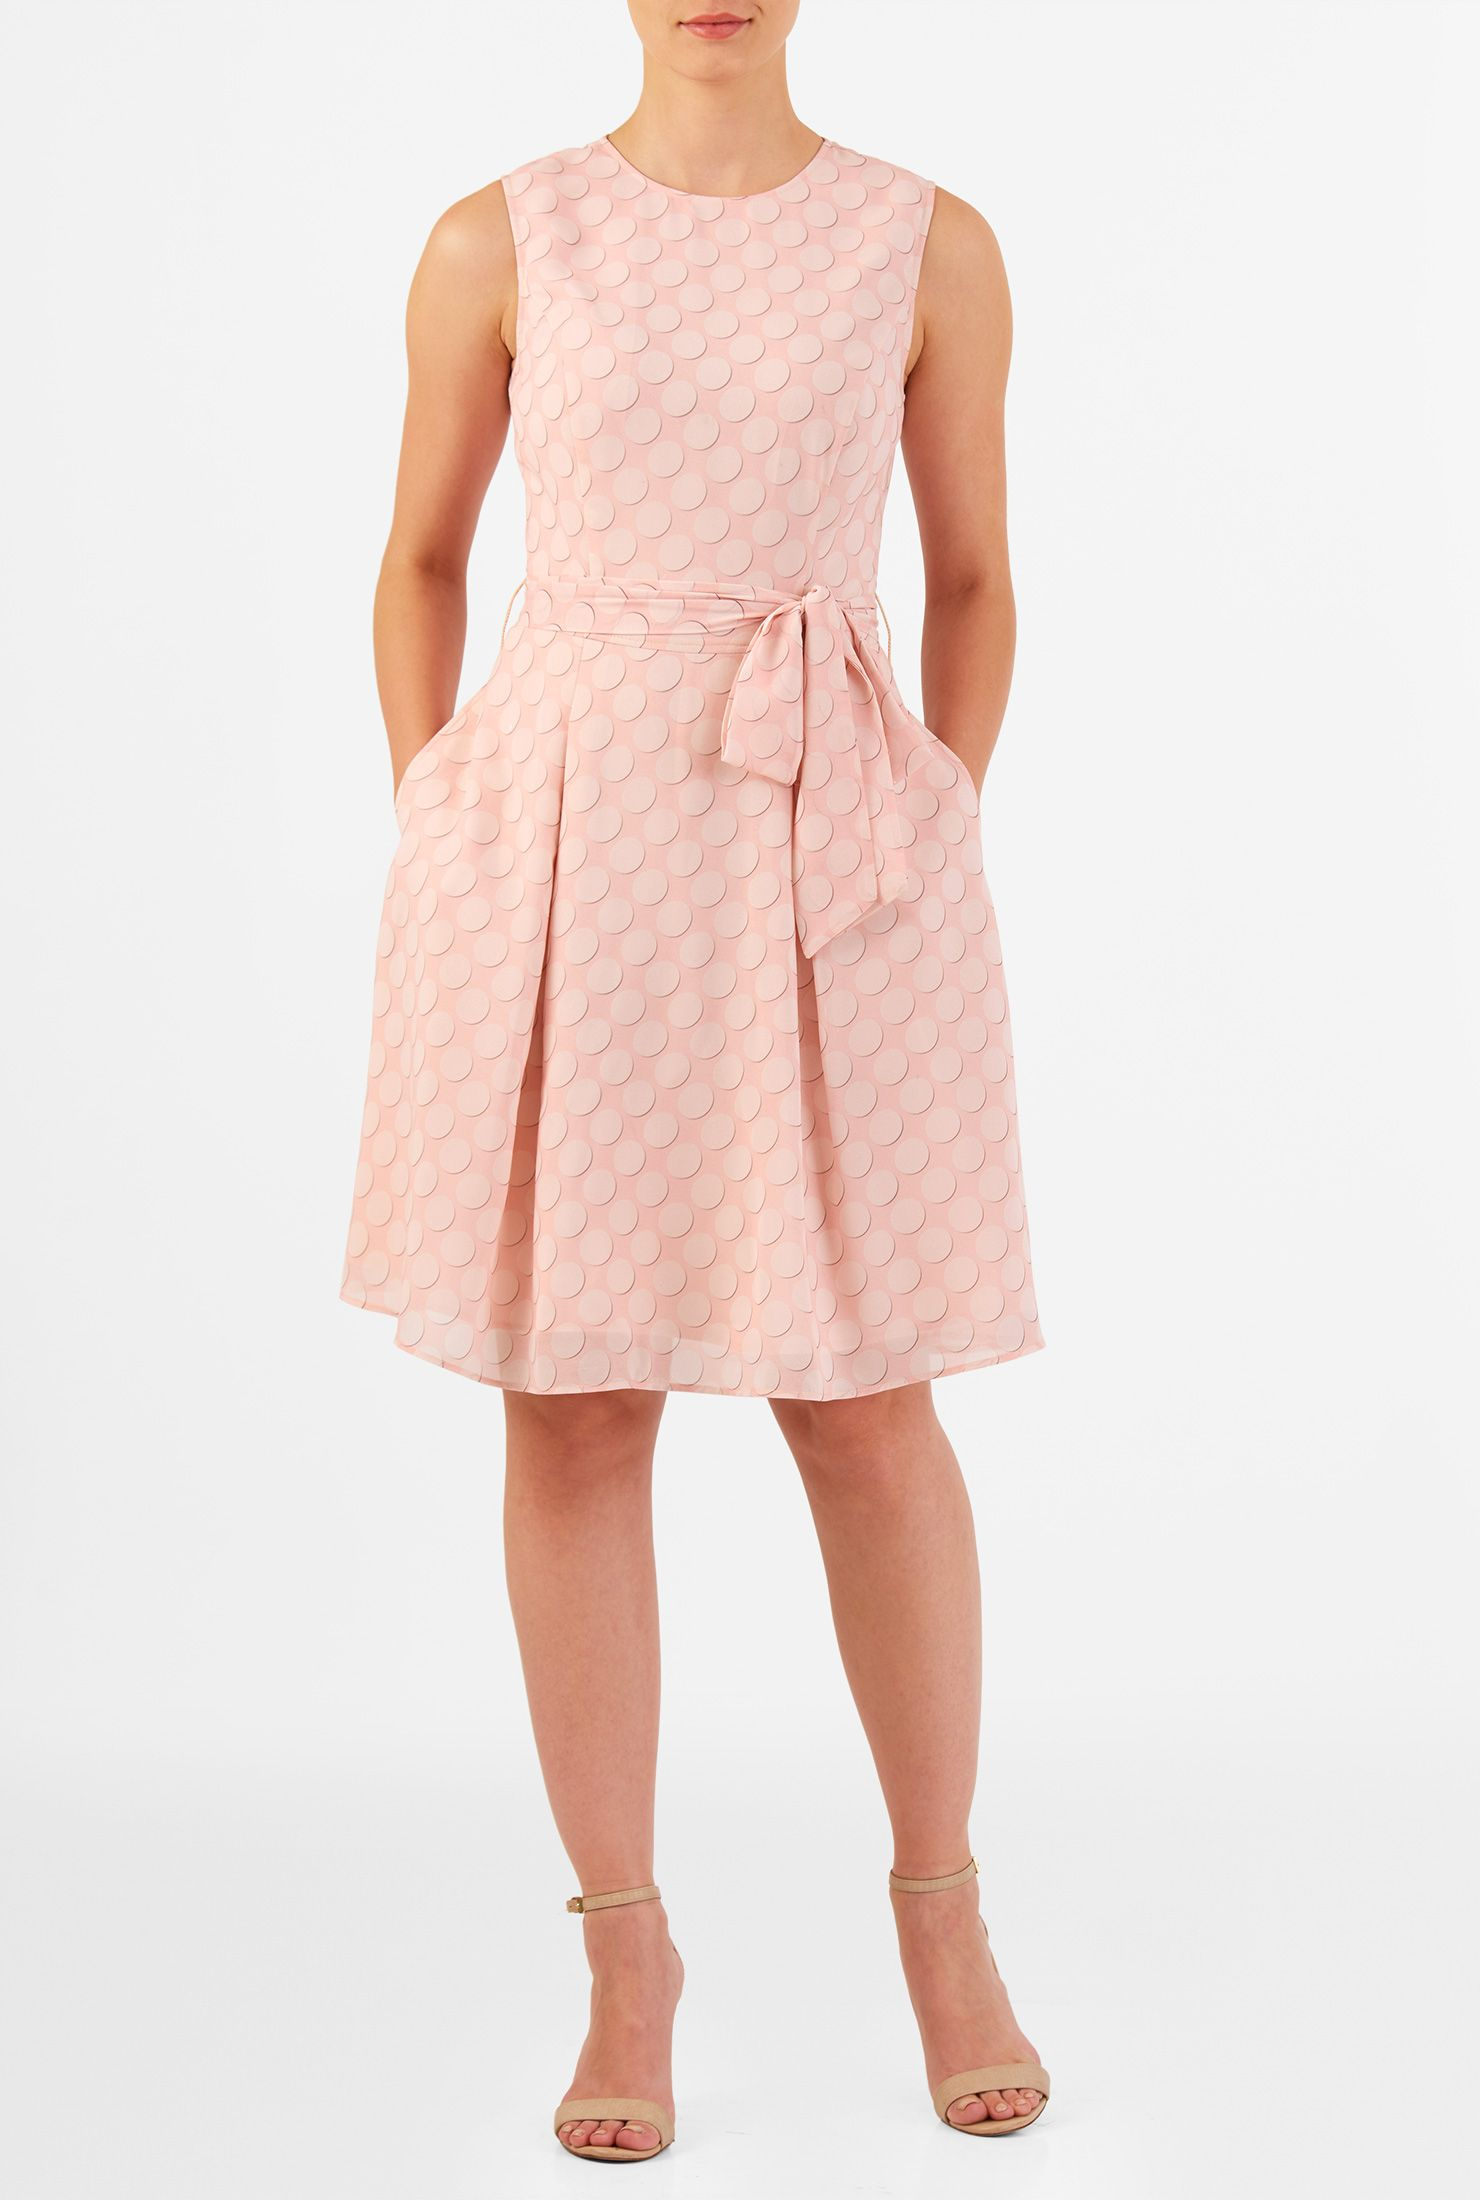 Polka dot print georgette sash tie dress | Box pleat skirt, Box ...